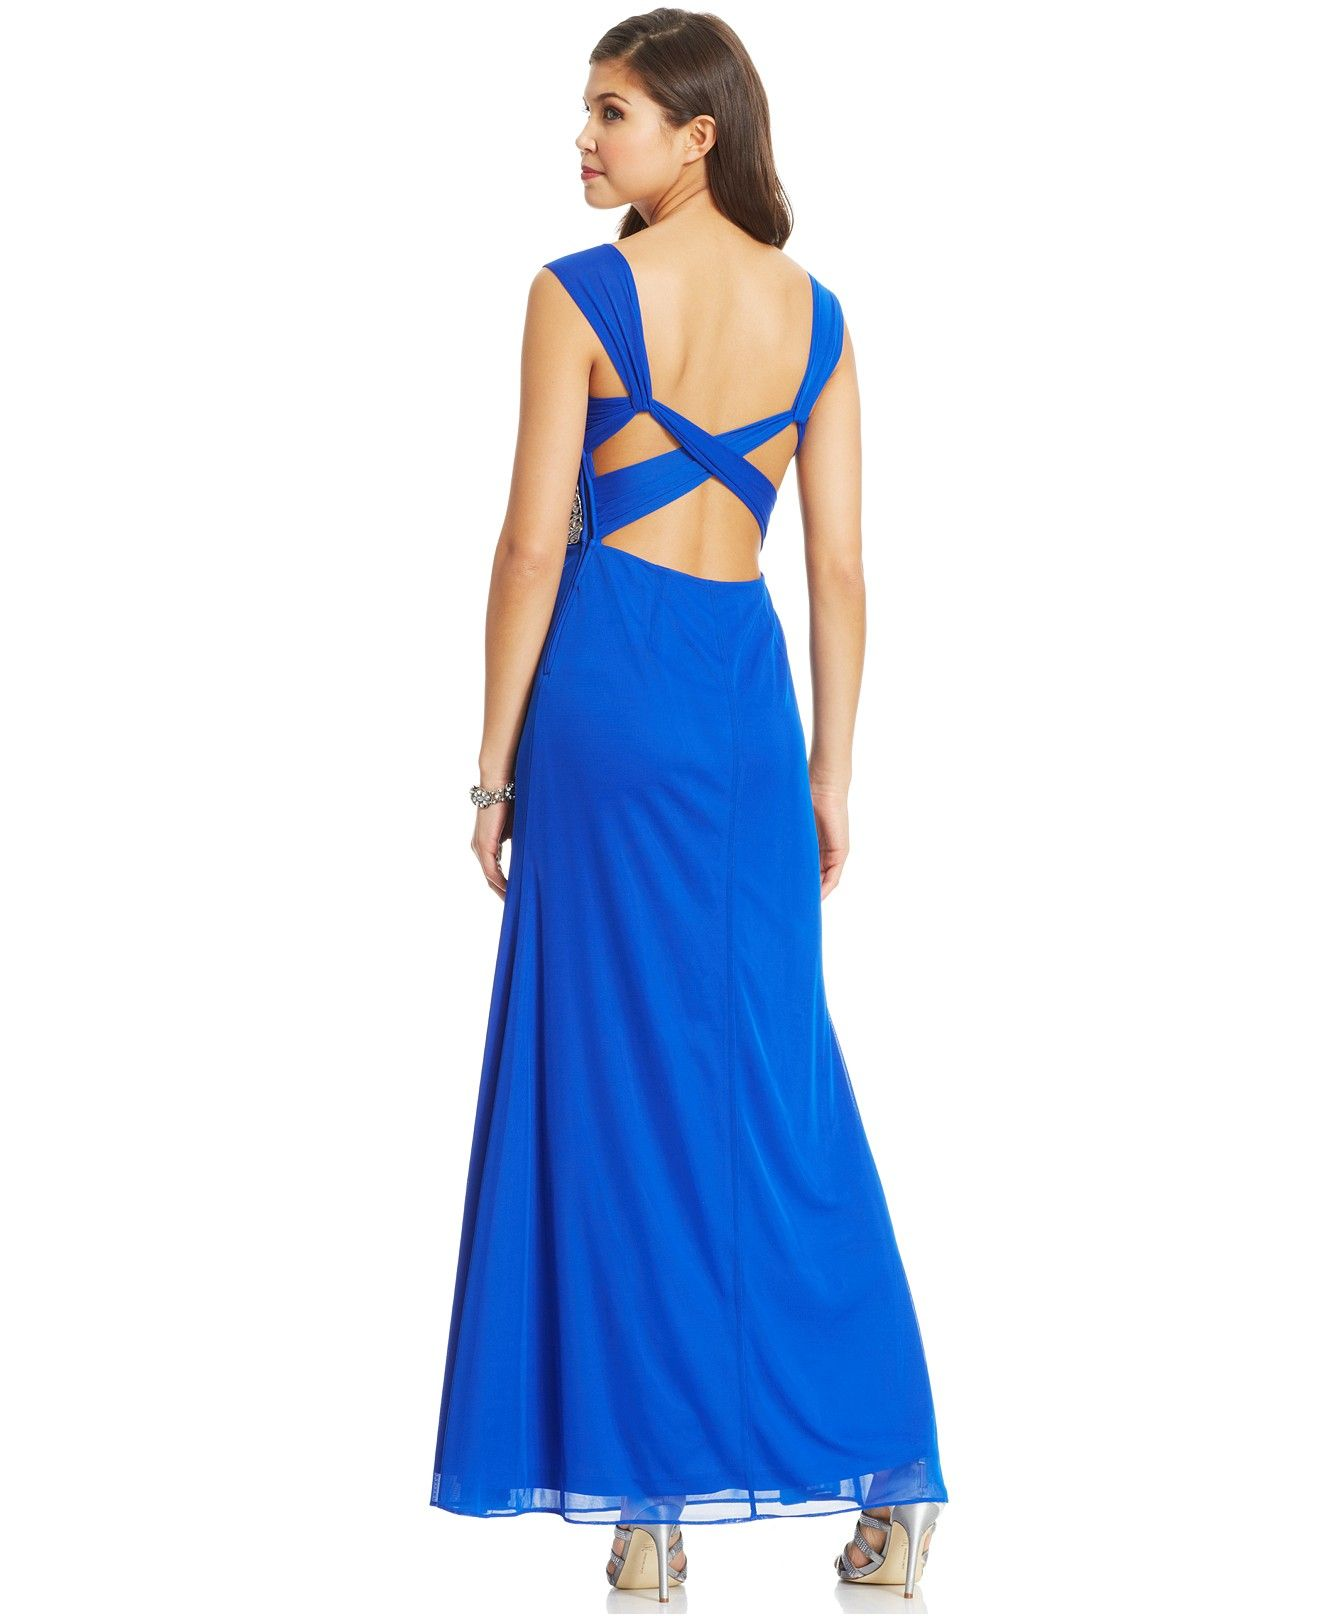 Hailey logan by adrianna papell juniorsu beaded back cutout gown